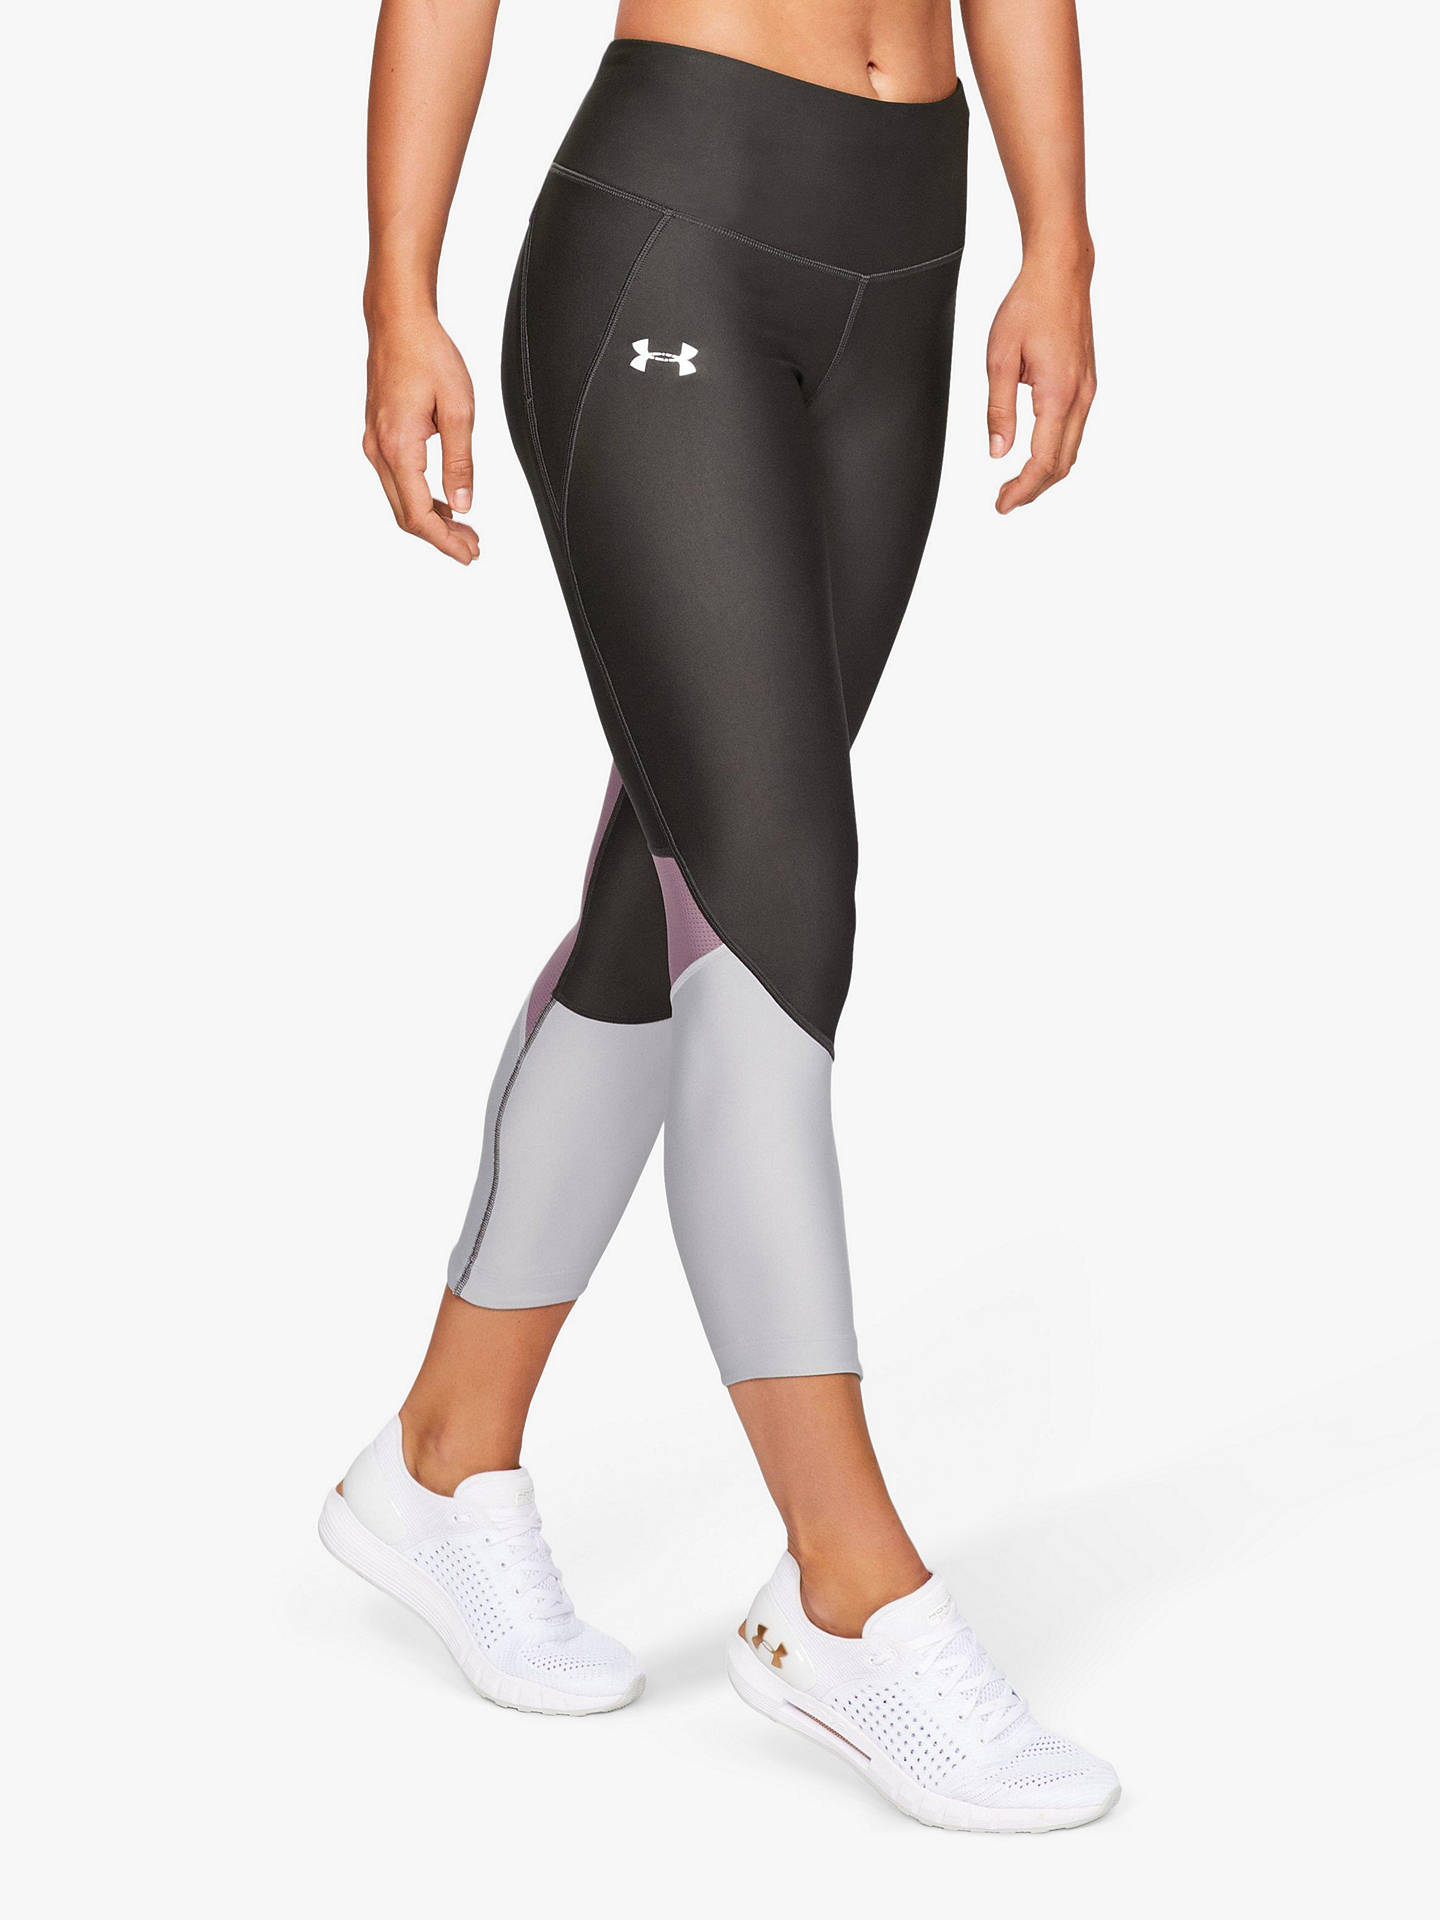 94445a402c5e1 Buy Under Armour Fly Fast Cropped Leggings, Black/Grey, XS Online at  johnlewis ...